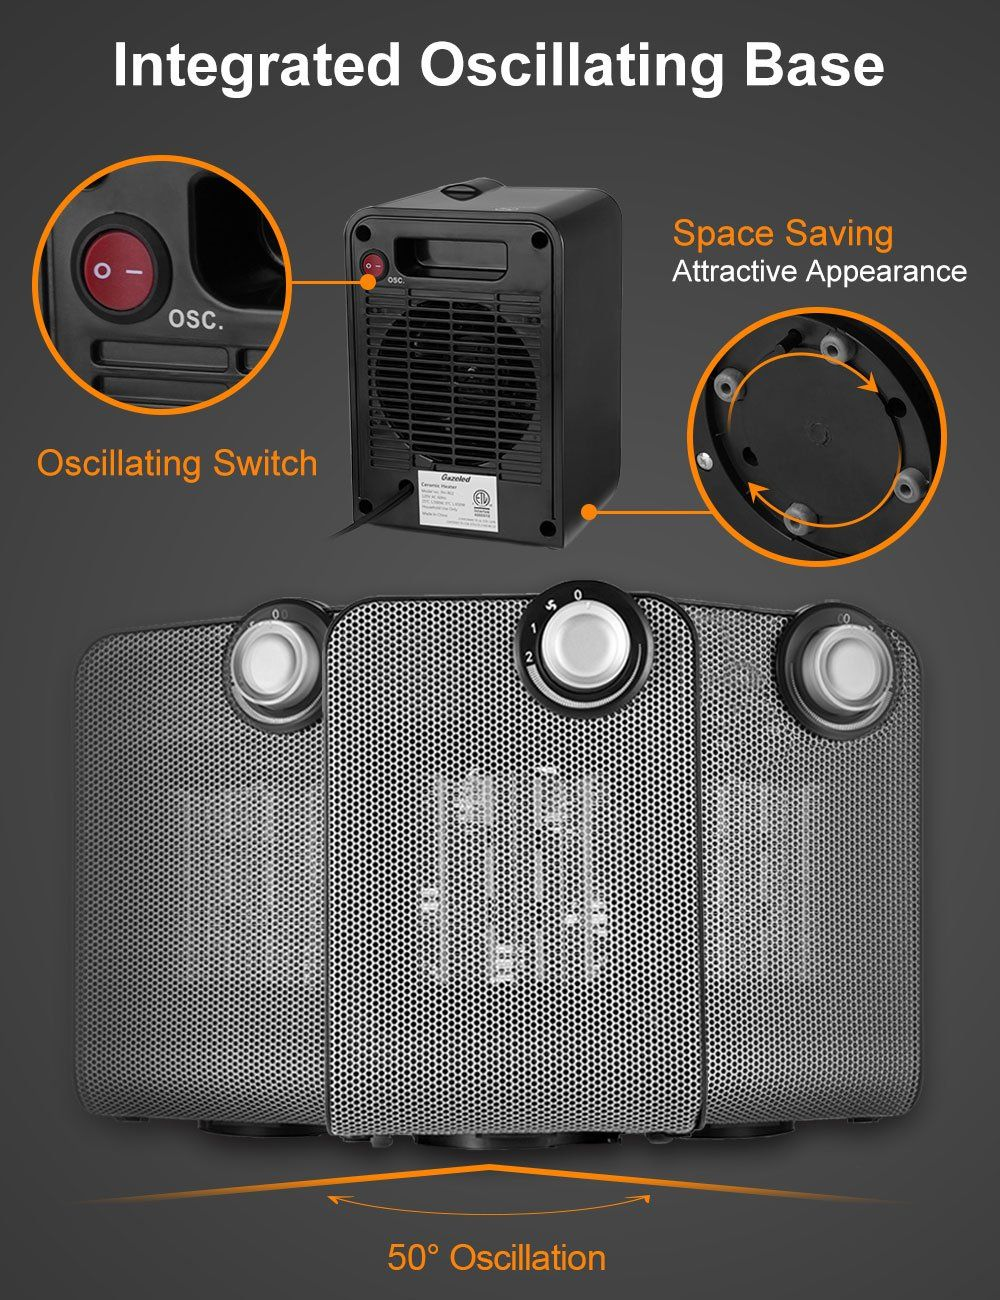 Portable ceramic heater small personal space heater ww safe